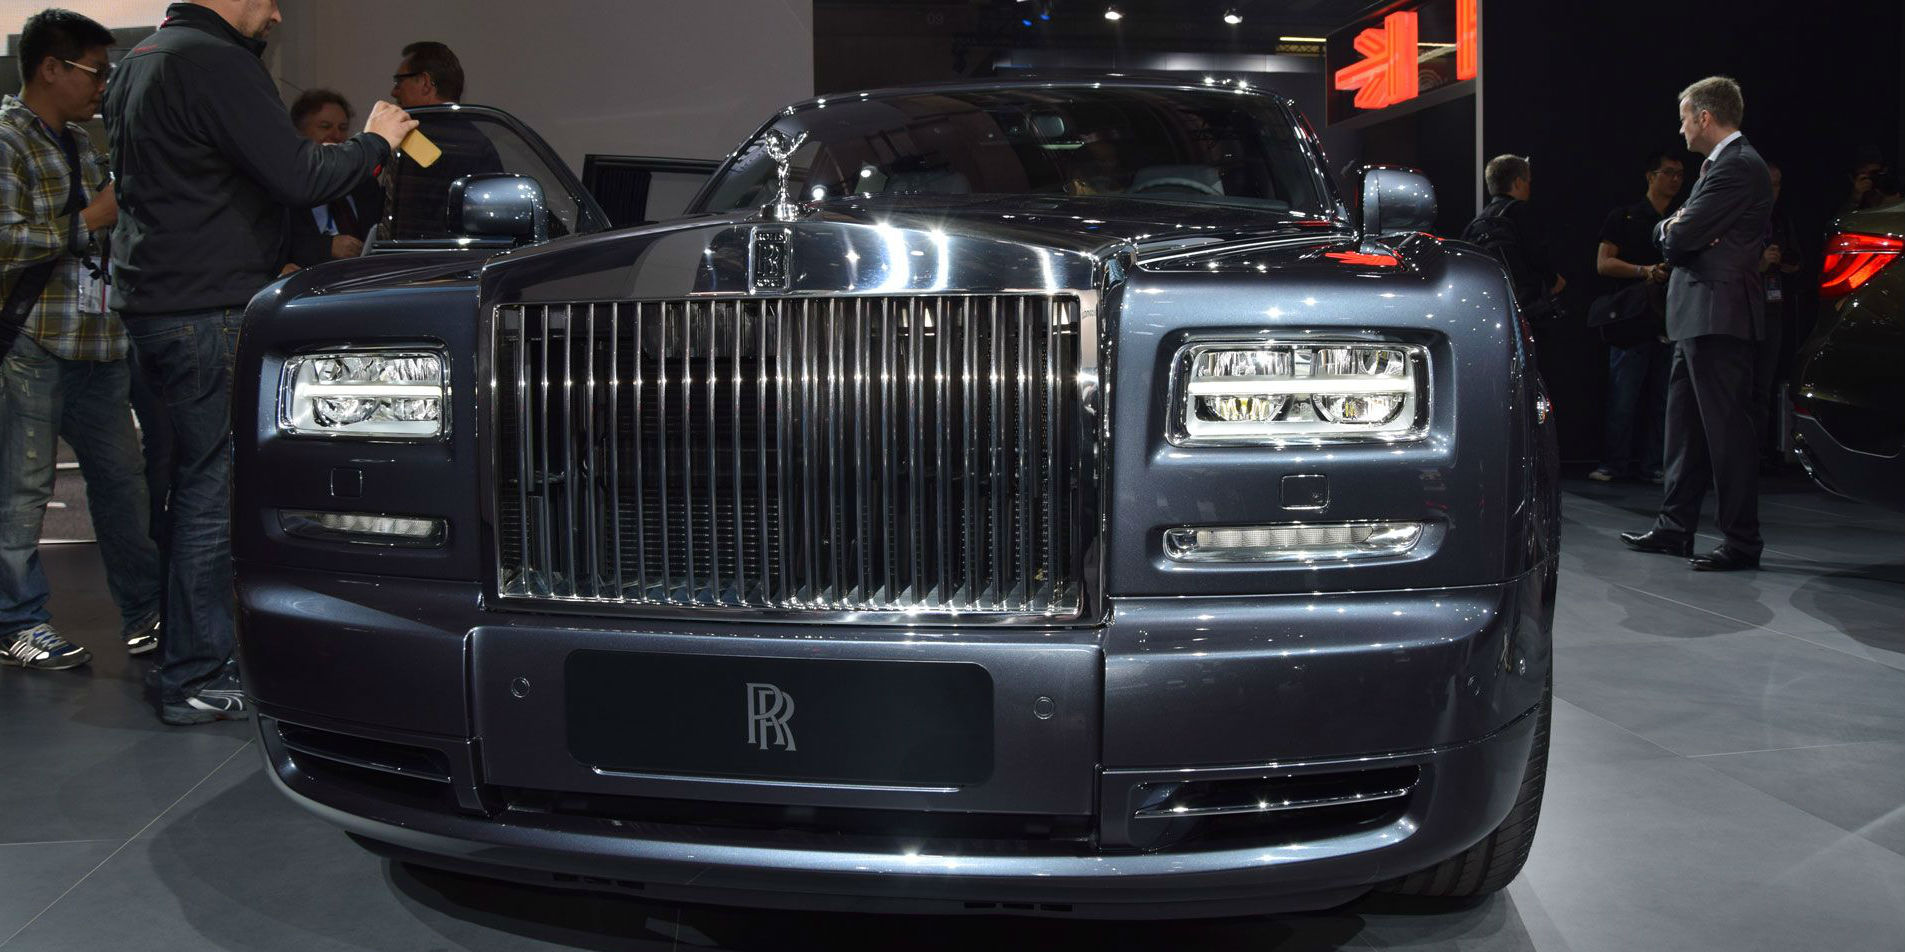 Rolls Royce 2014 Paris Motor Show cover